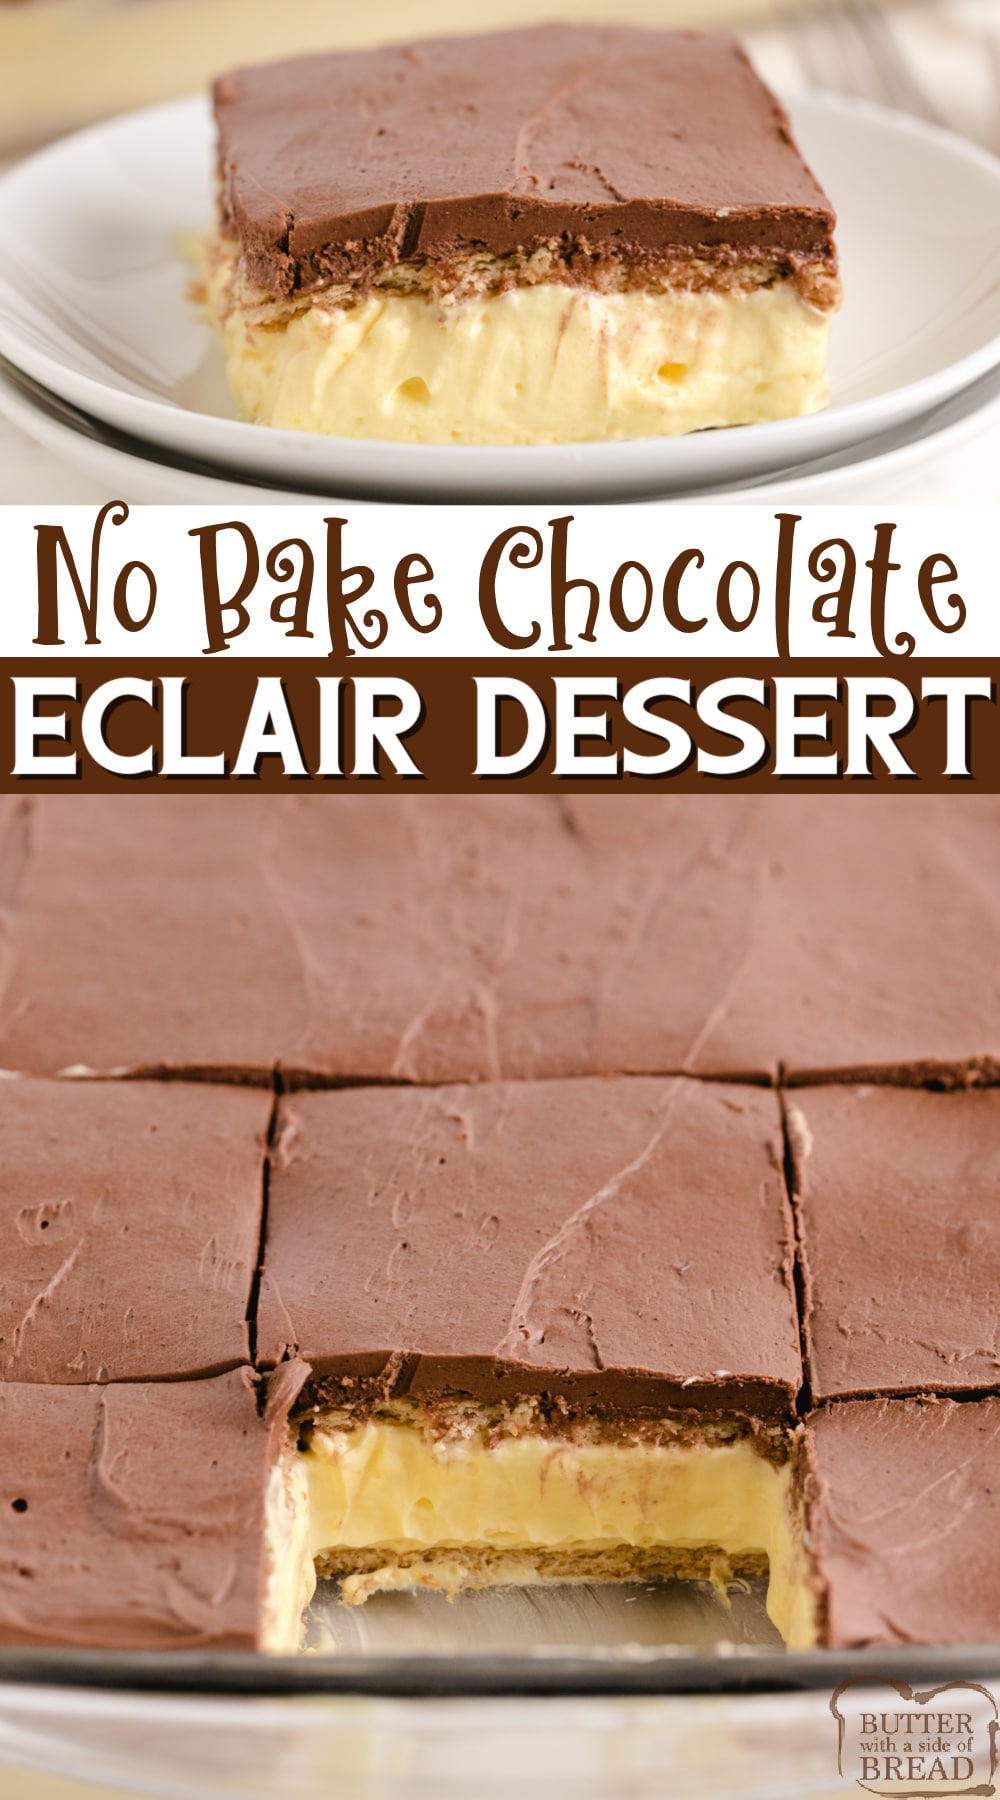 No Bake Eclair Cake made with graham crackers, vanilla pudding and a delicious fudgy chocolate frosting layer on top. This no bake chocolate eclair dessert tastes just like a cream puff!